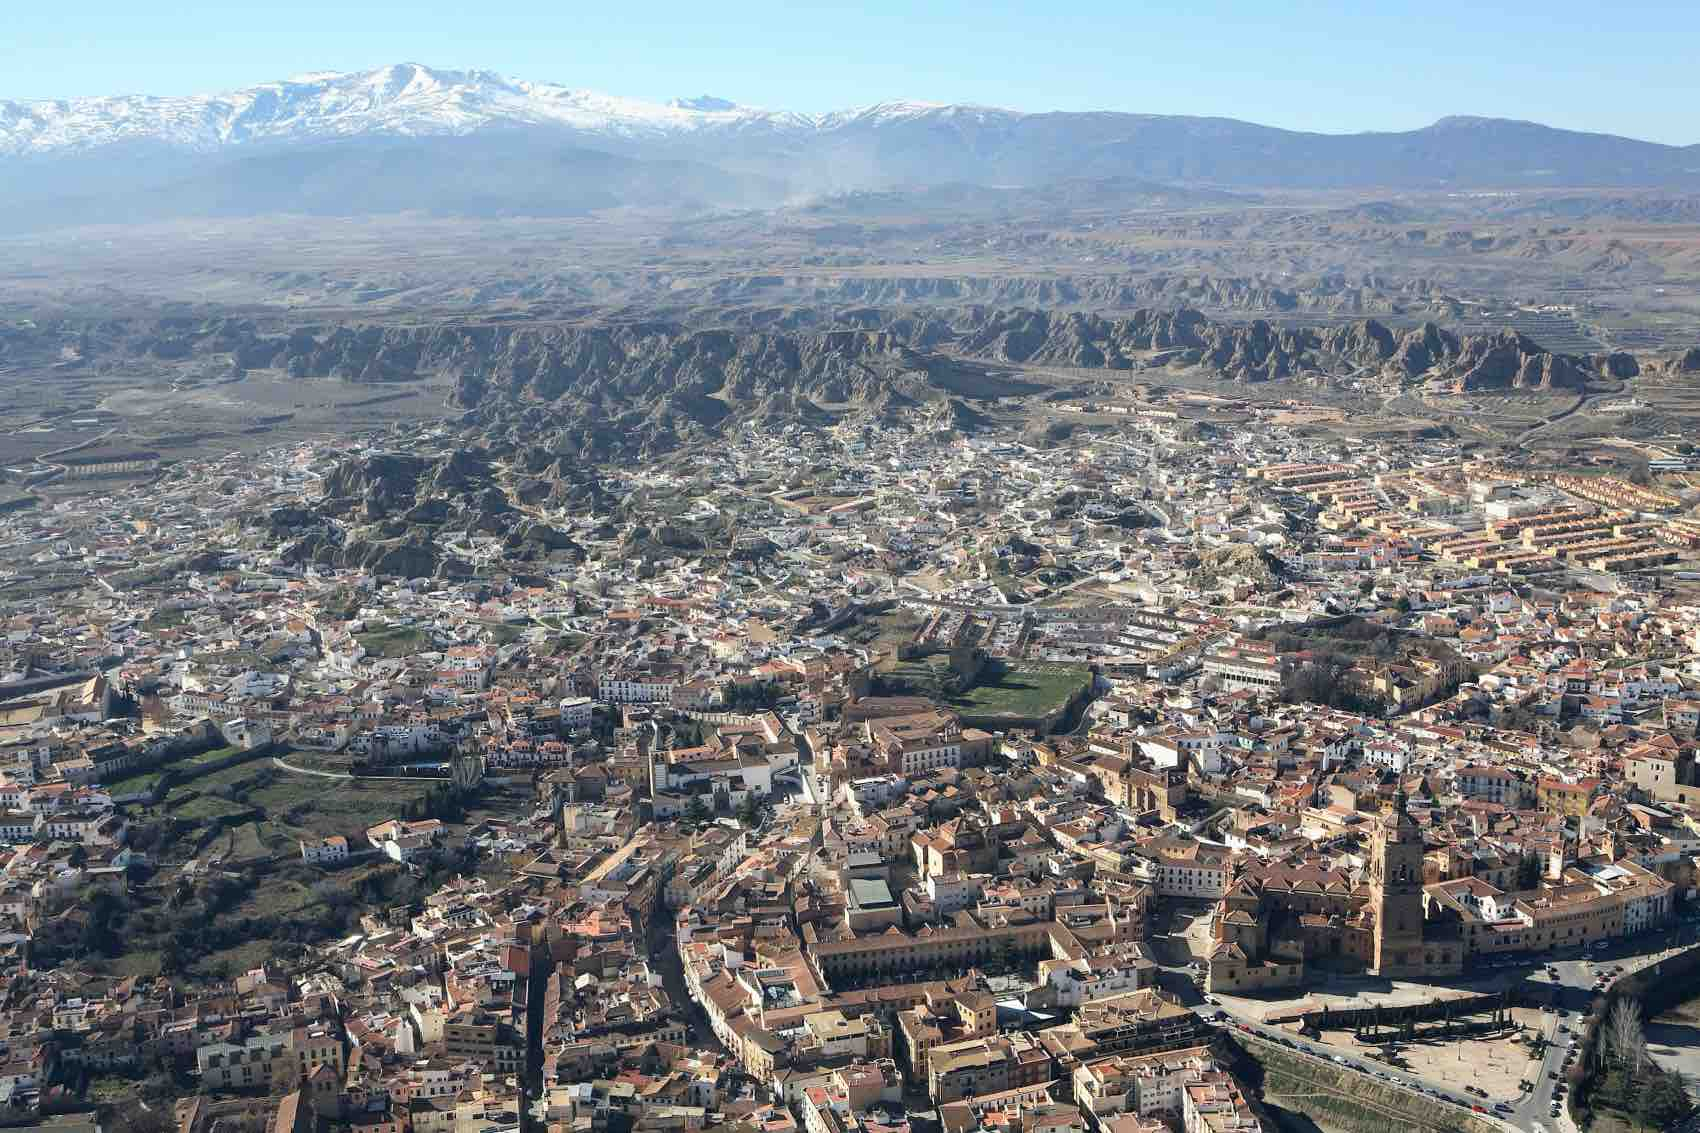 Panorama of Guadix and Sierra Nevada in the background. The city lies at an altitude of 913 metres